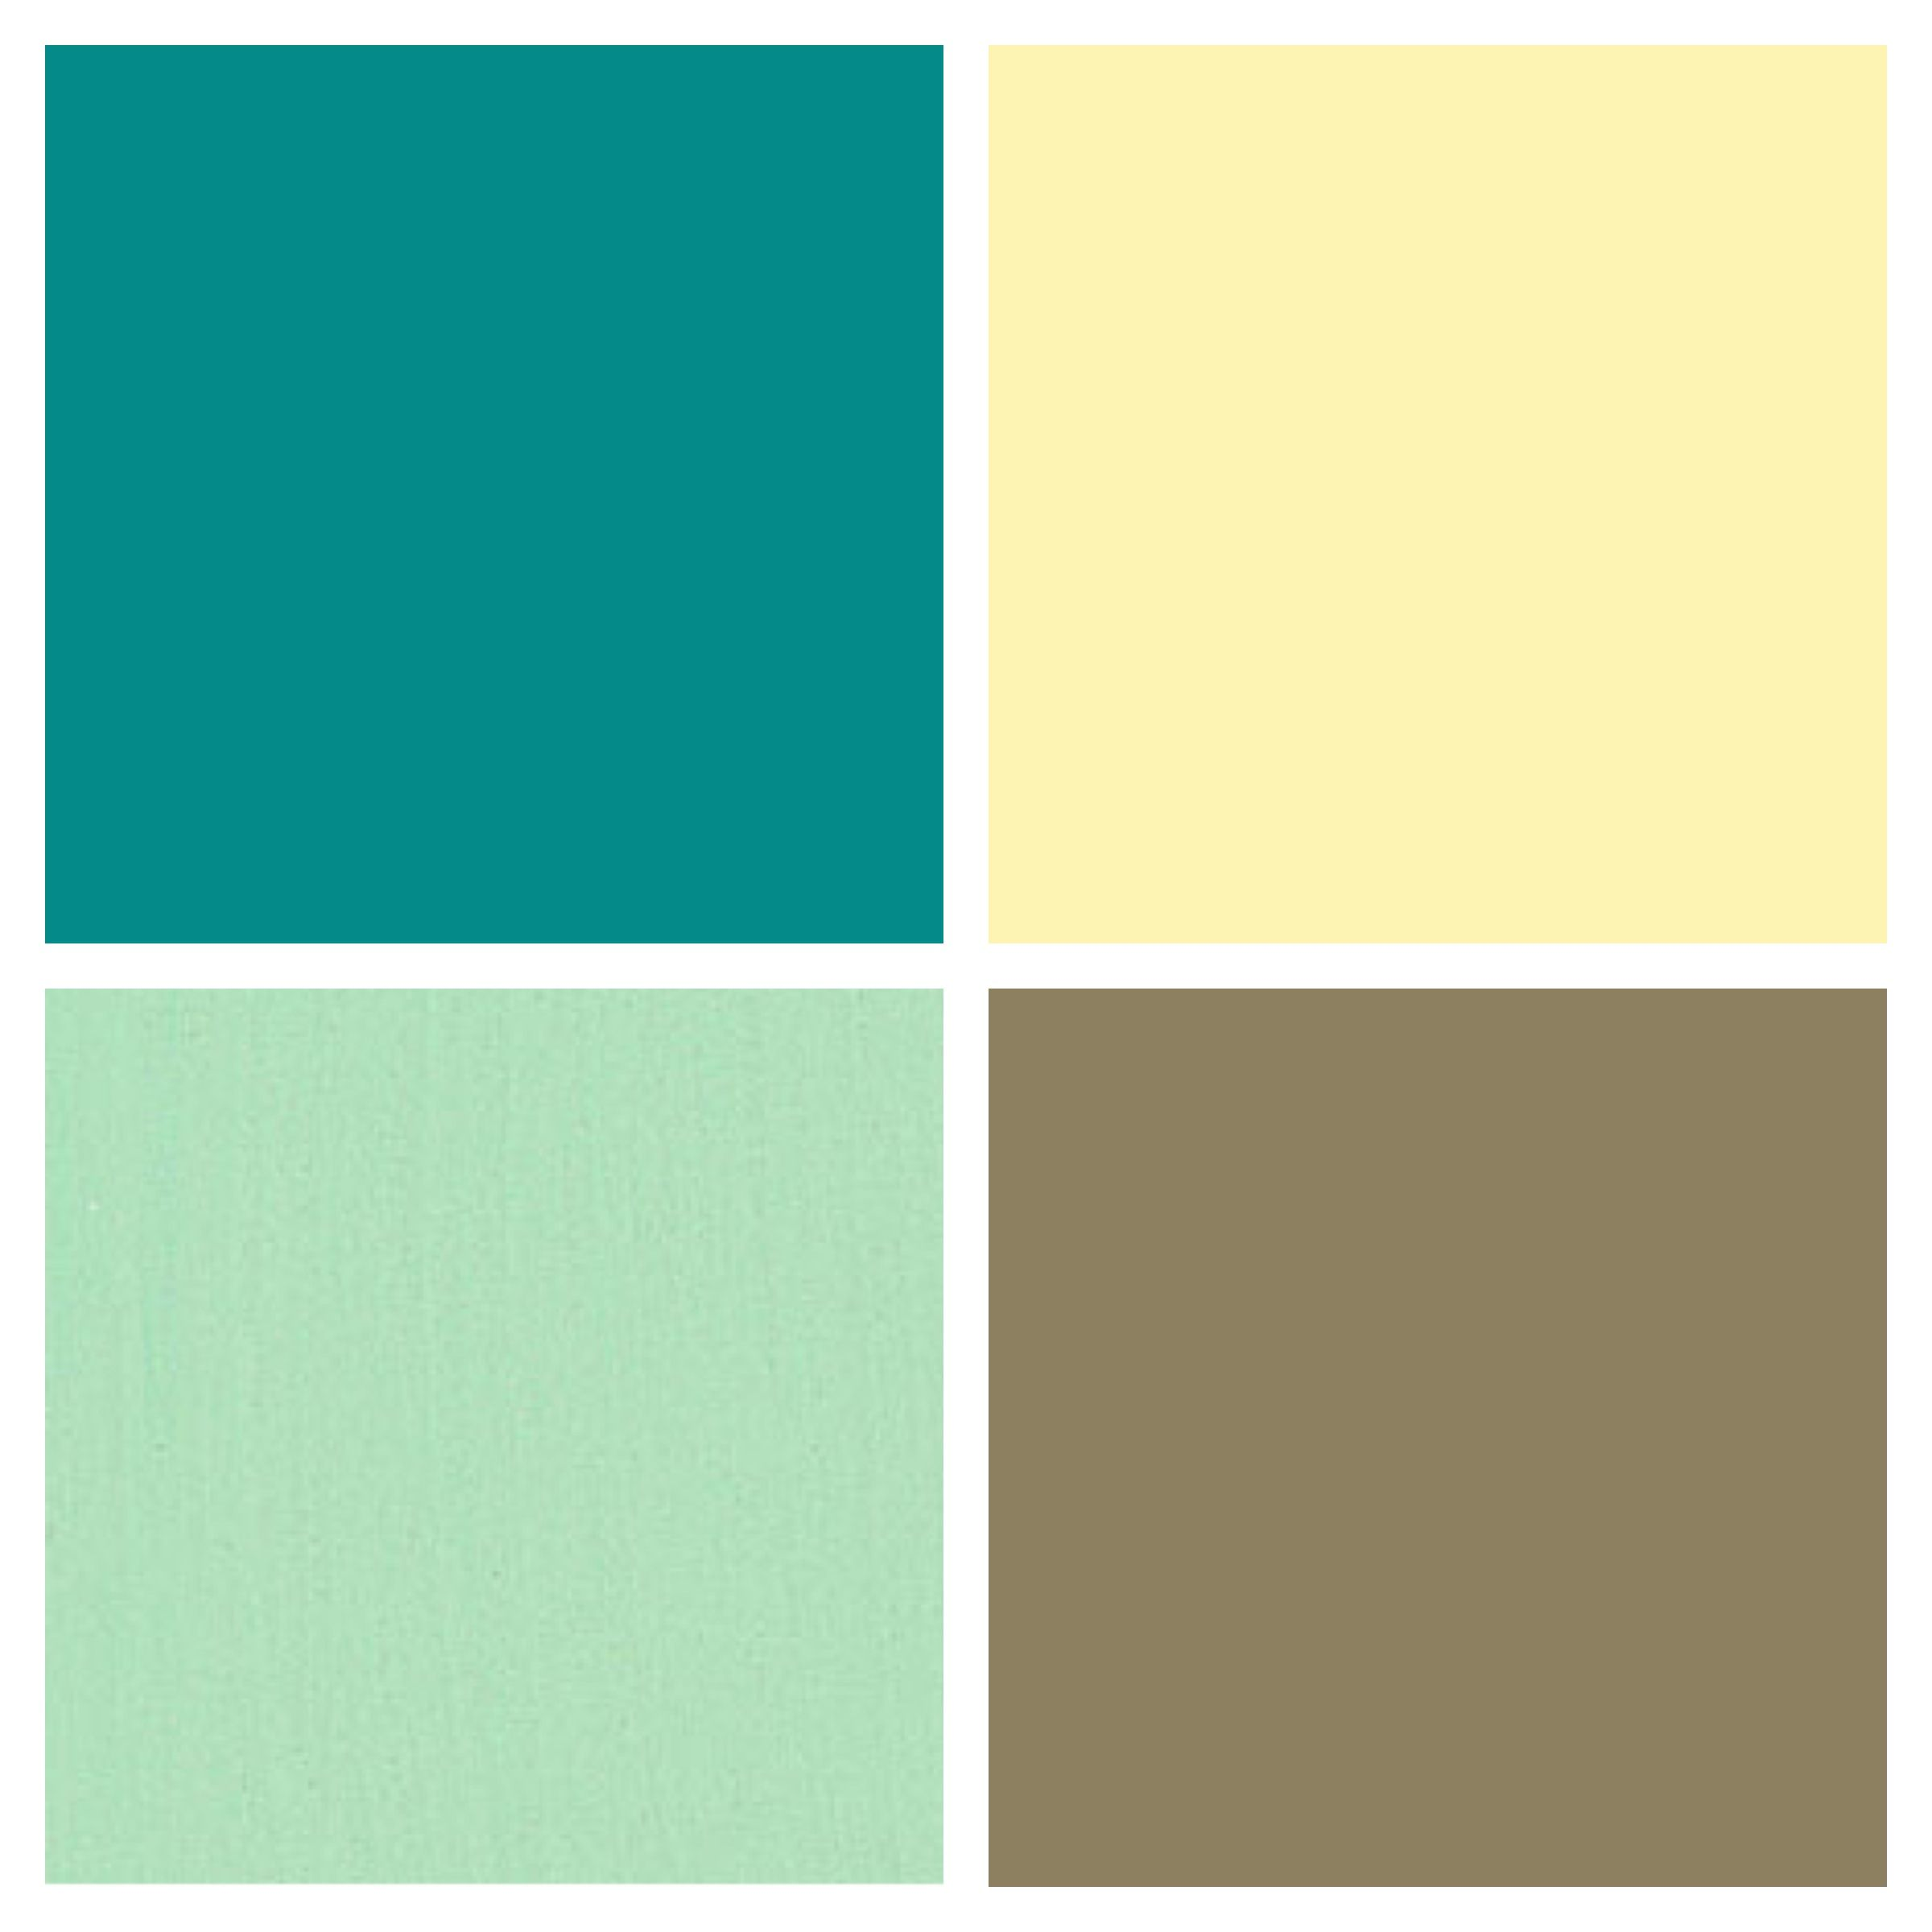 Kitchen color palette- butter / country yellow, mint ...